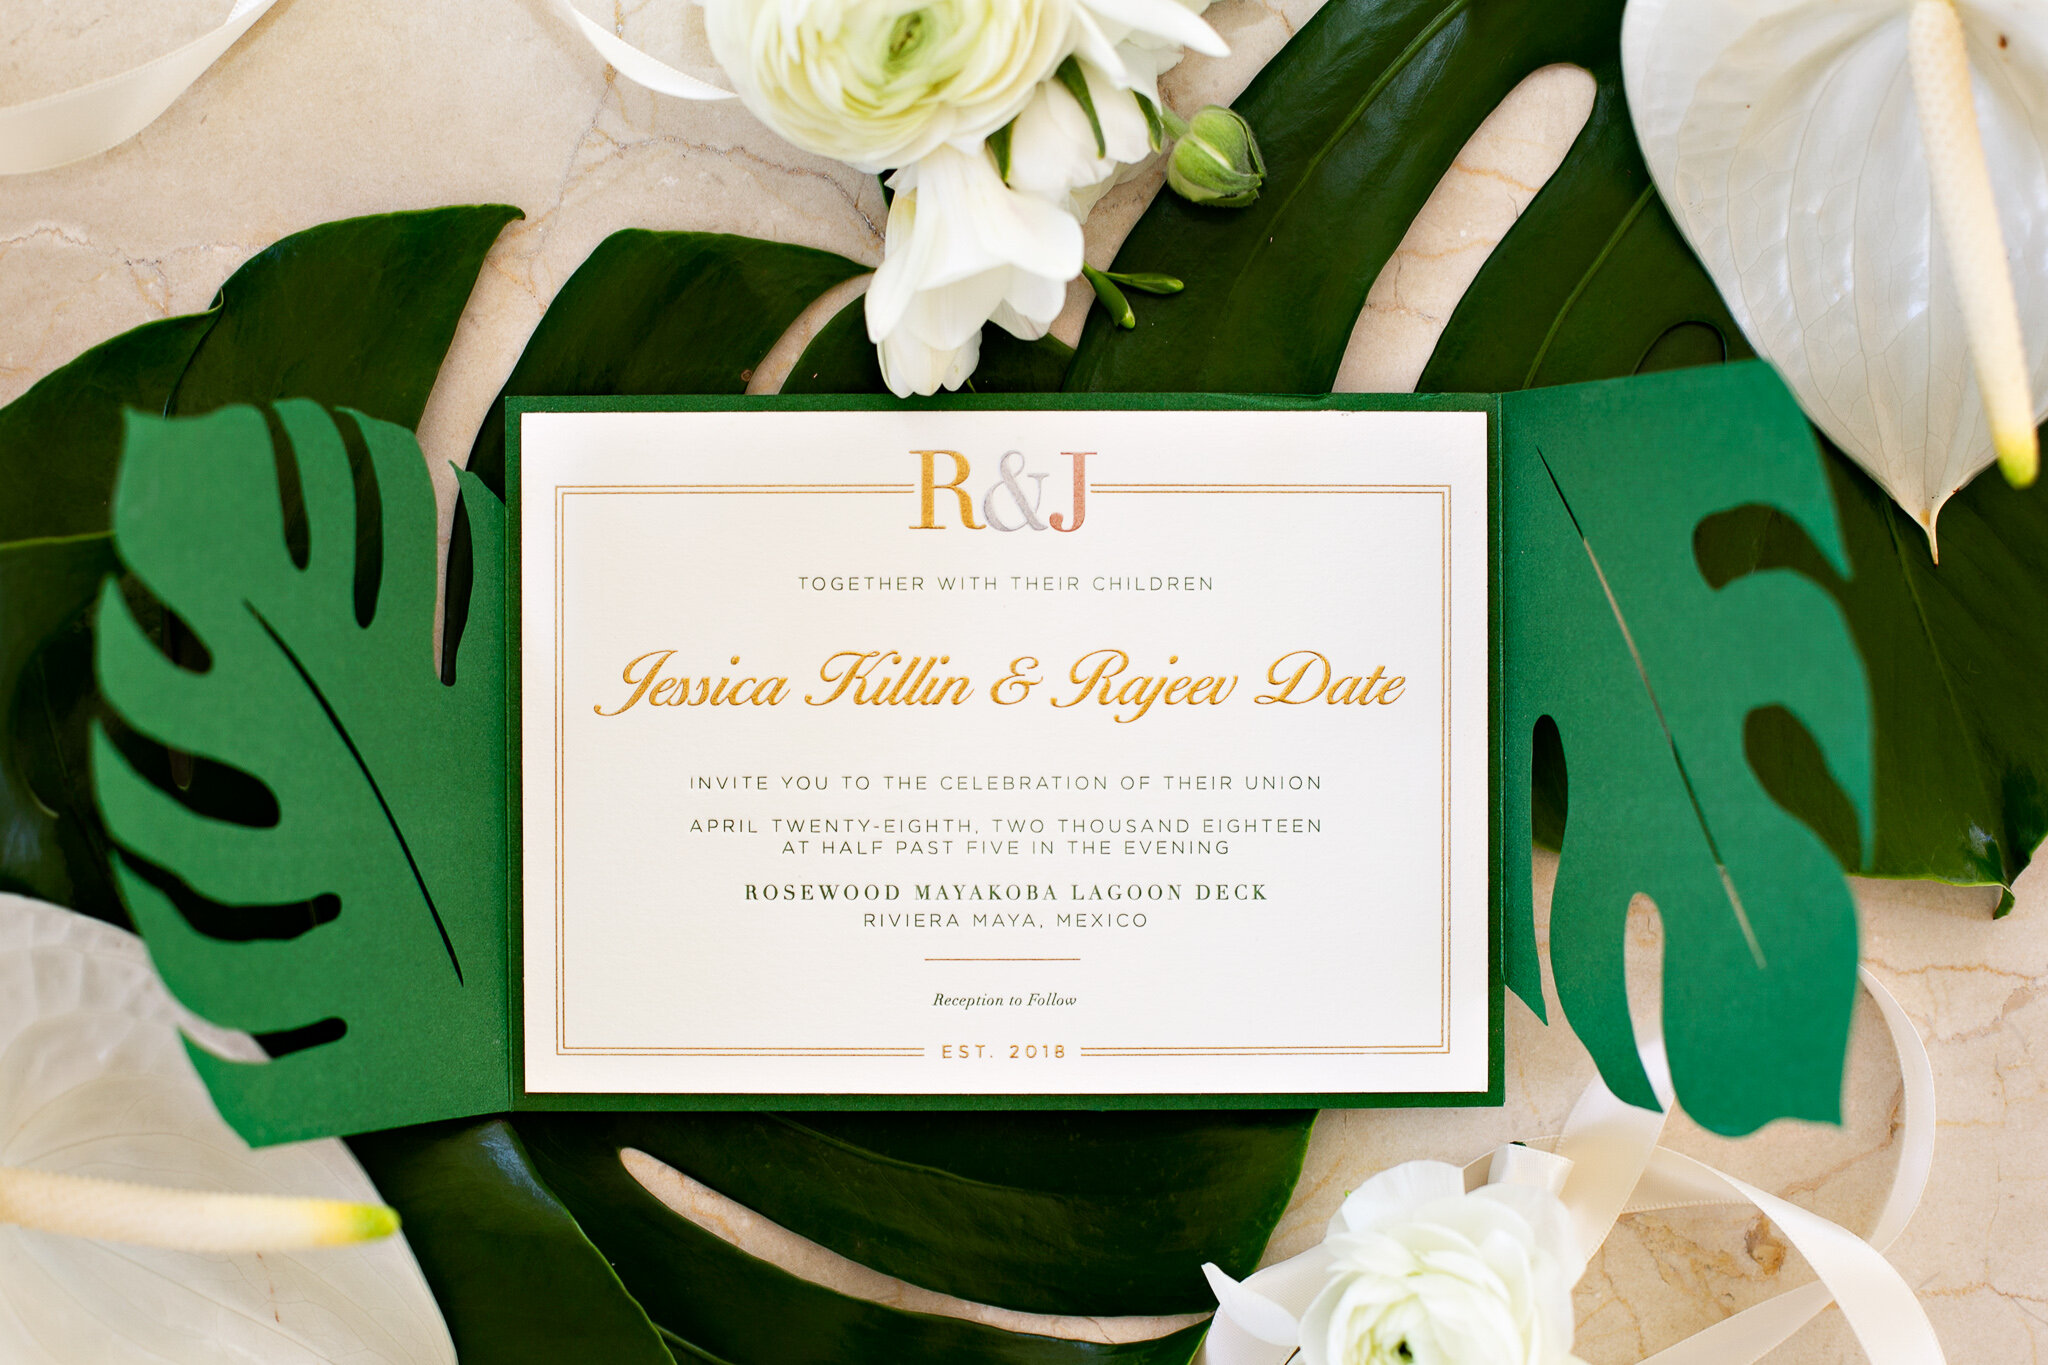 Tri Color Engraving (Gold, Silver, and Rose Gold) and Green Letterpress.